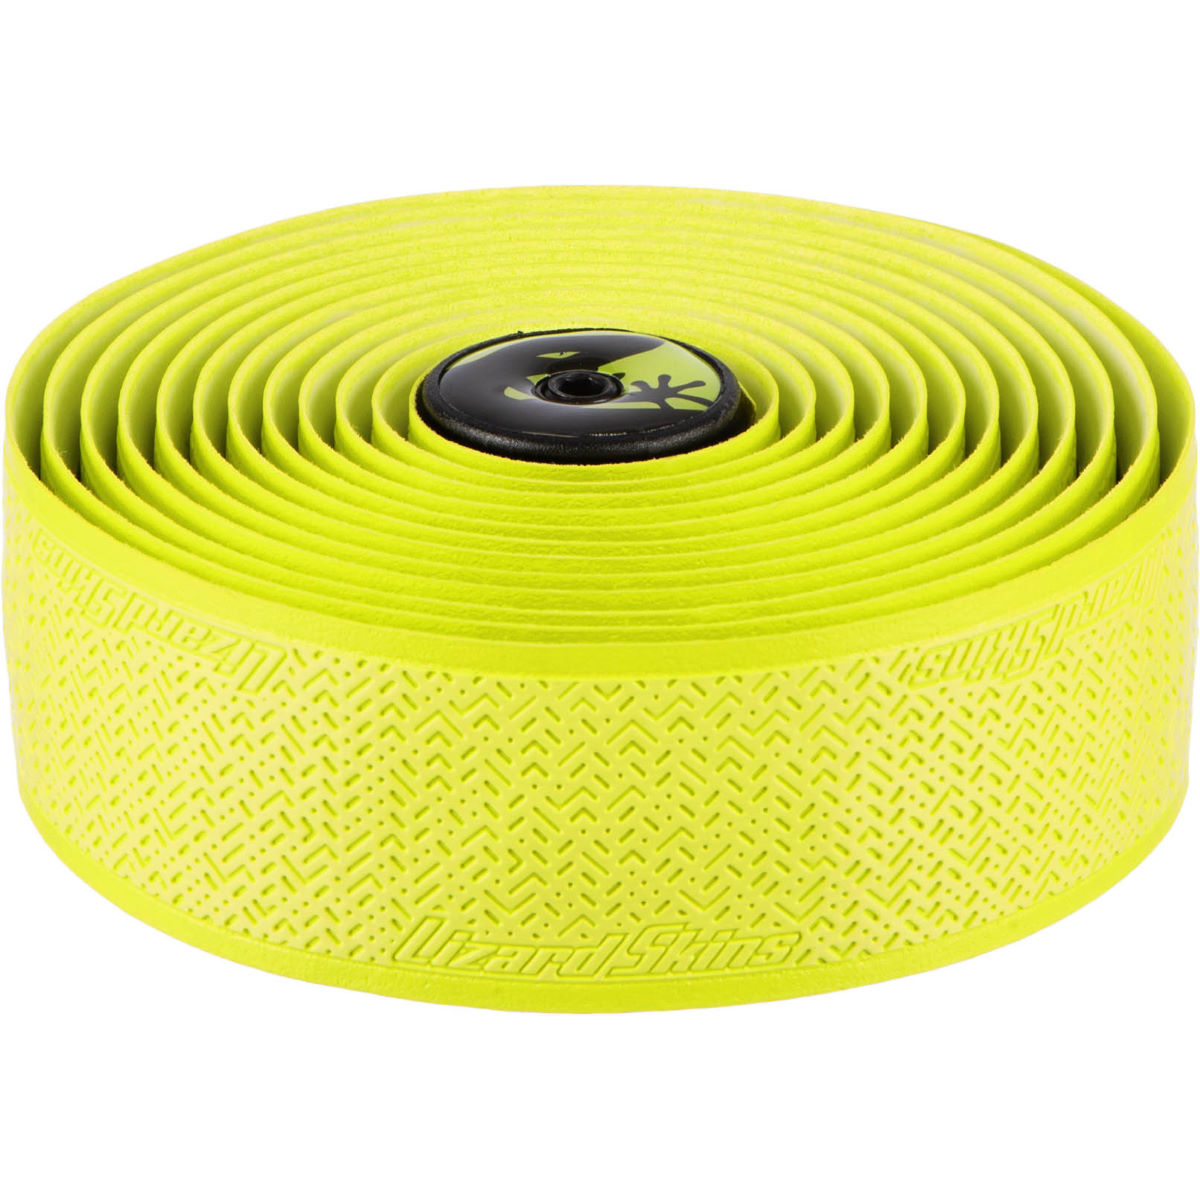 Lizard Skins DSP V2 2.5mm Bar Tape - One Size Neon Yellow | Bar Tape